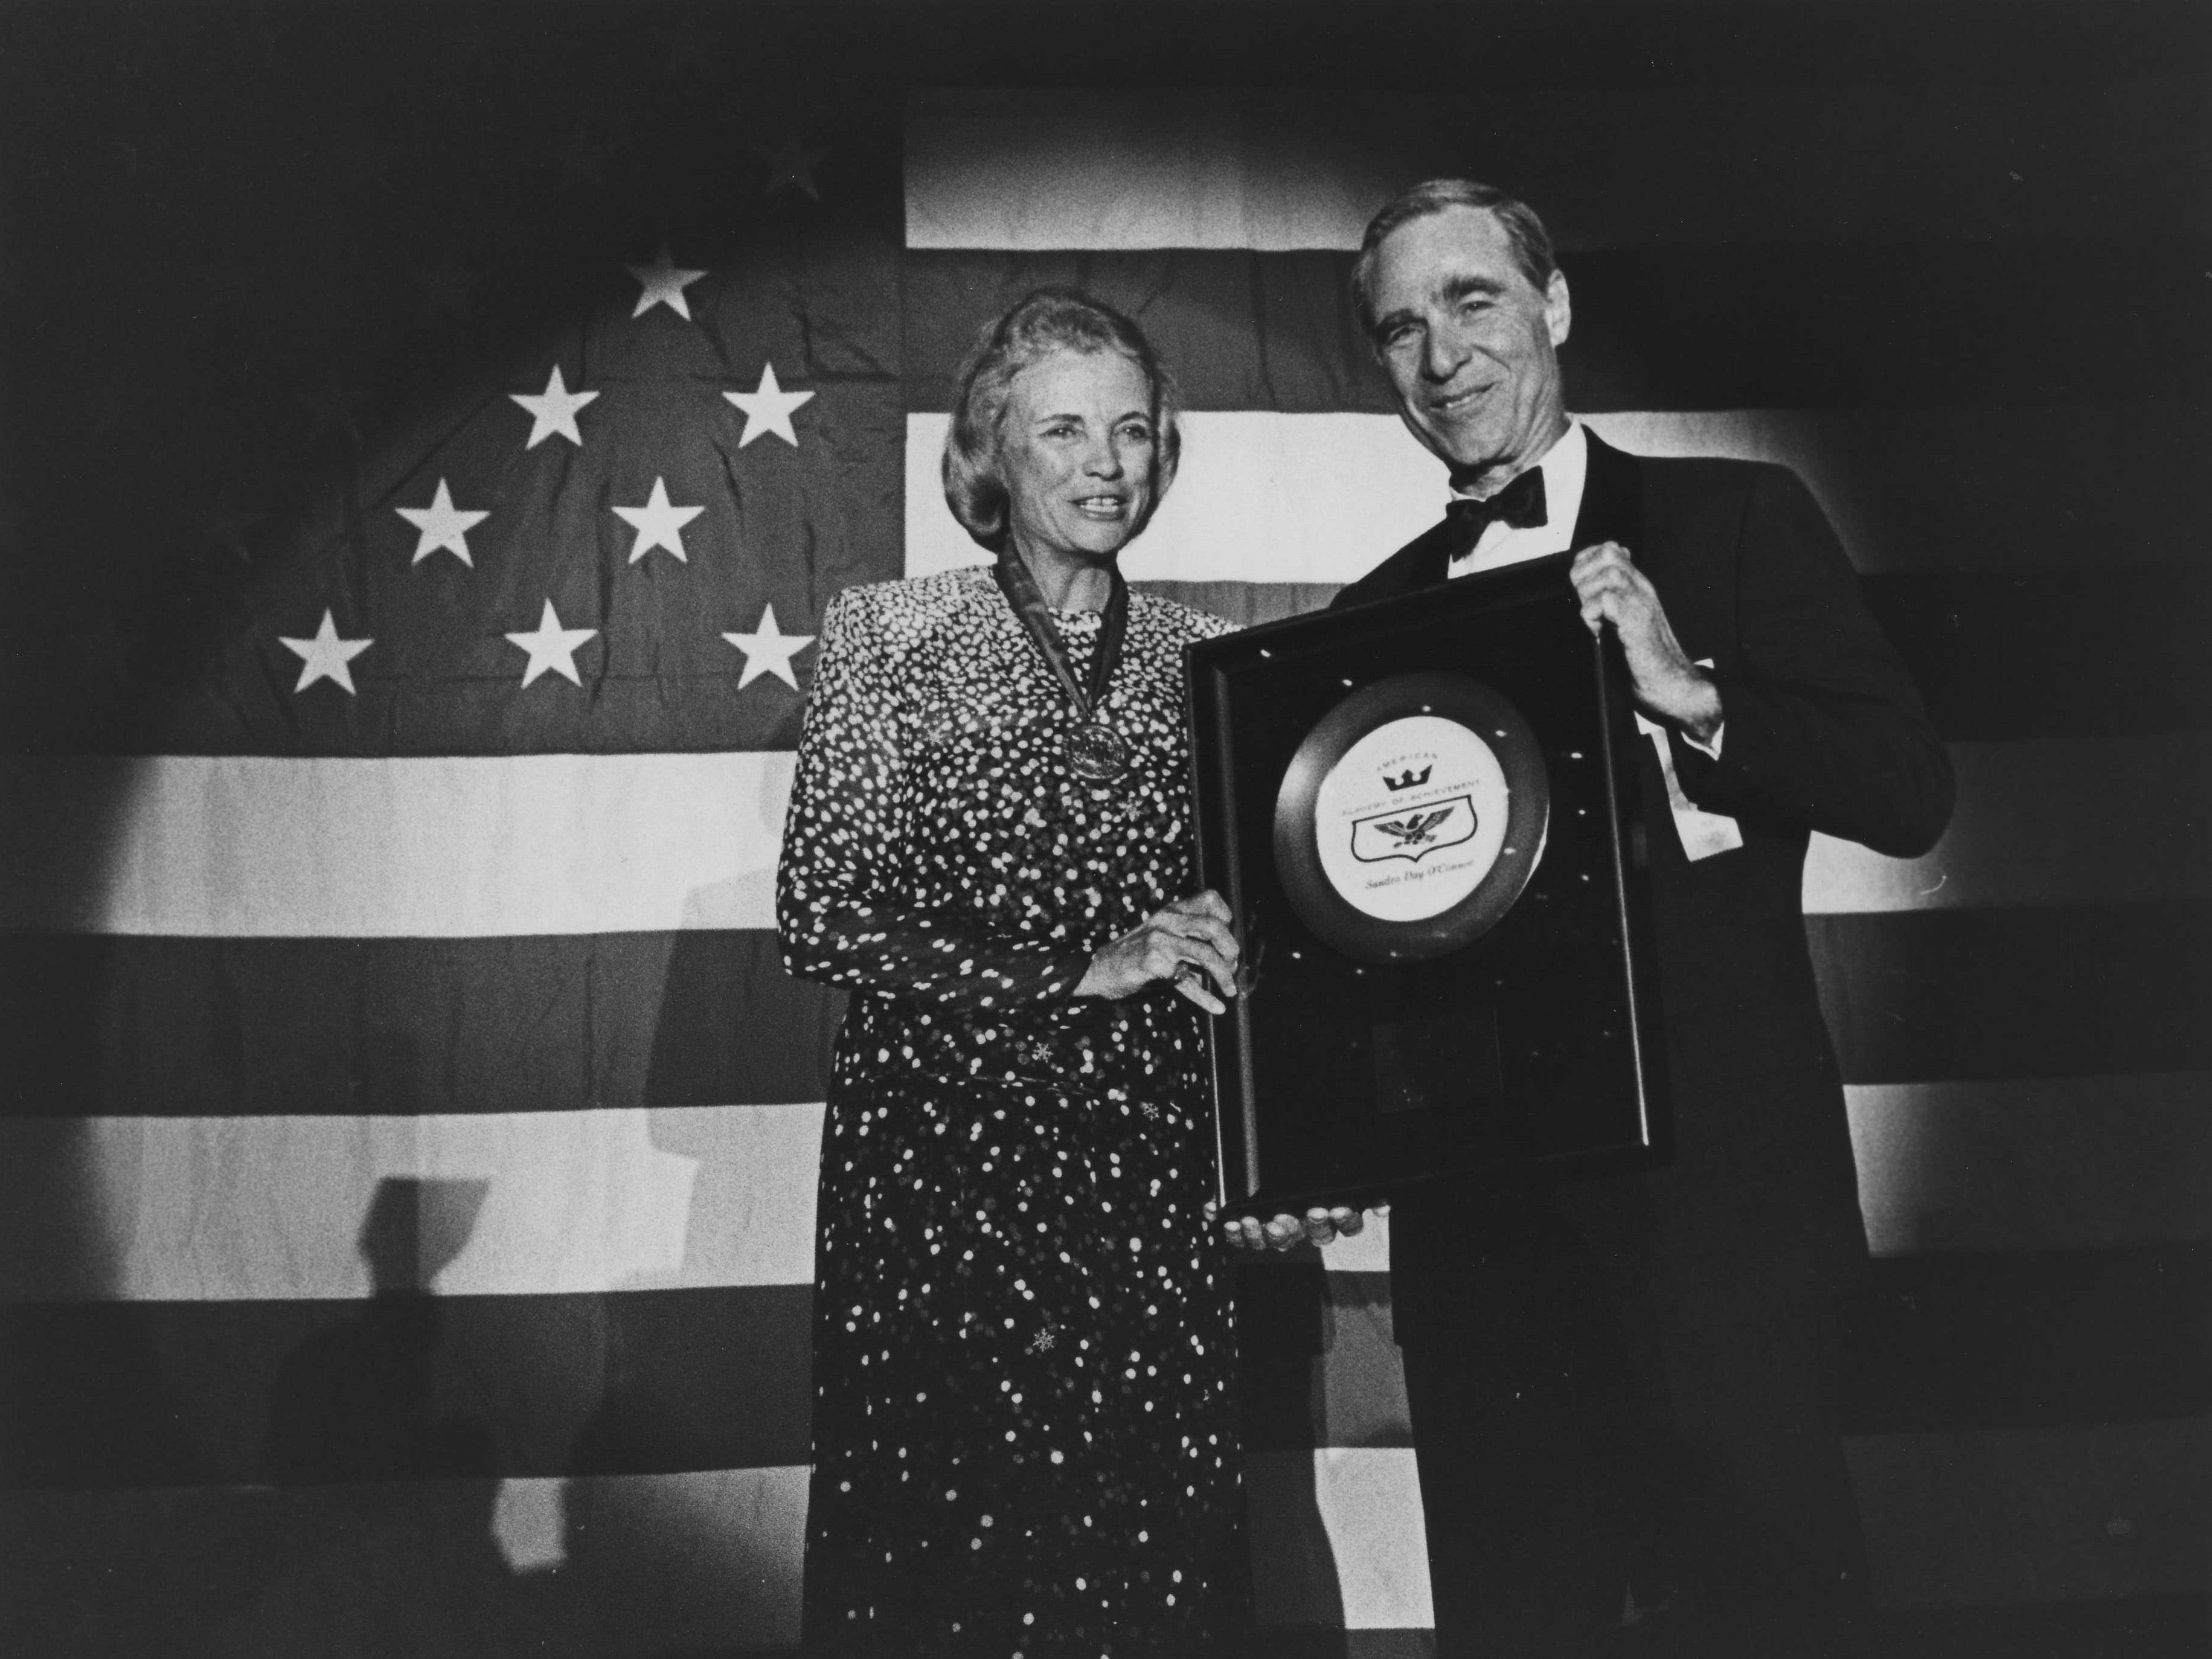 Supreme Court Justice Sandra Day O'Connor receives a Golden Plate Award from host Karl Eller at the banquet for American Academy of Achievement on June 27, 1987, at the Registry Resort in Scottsdale.